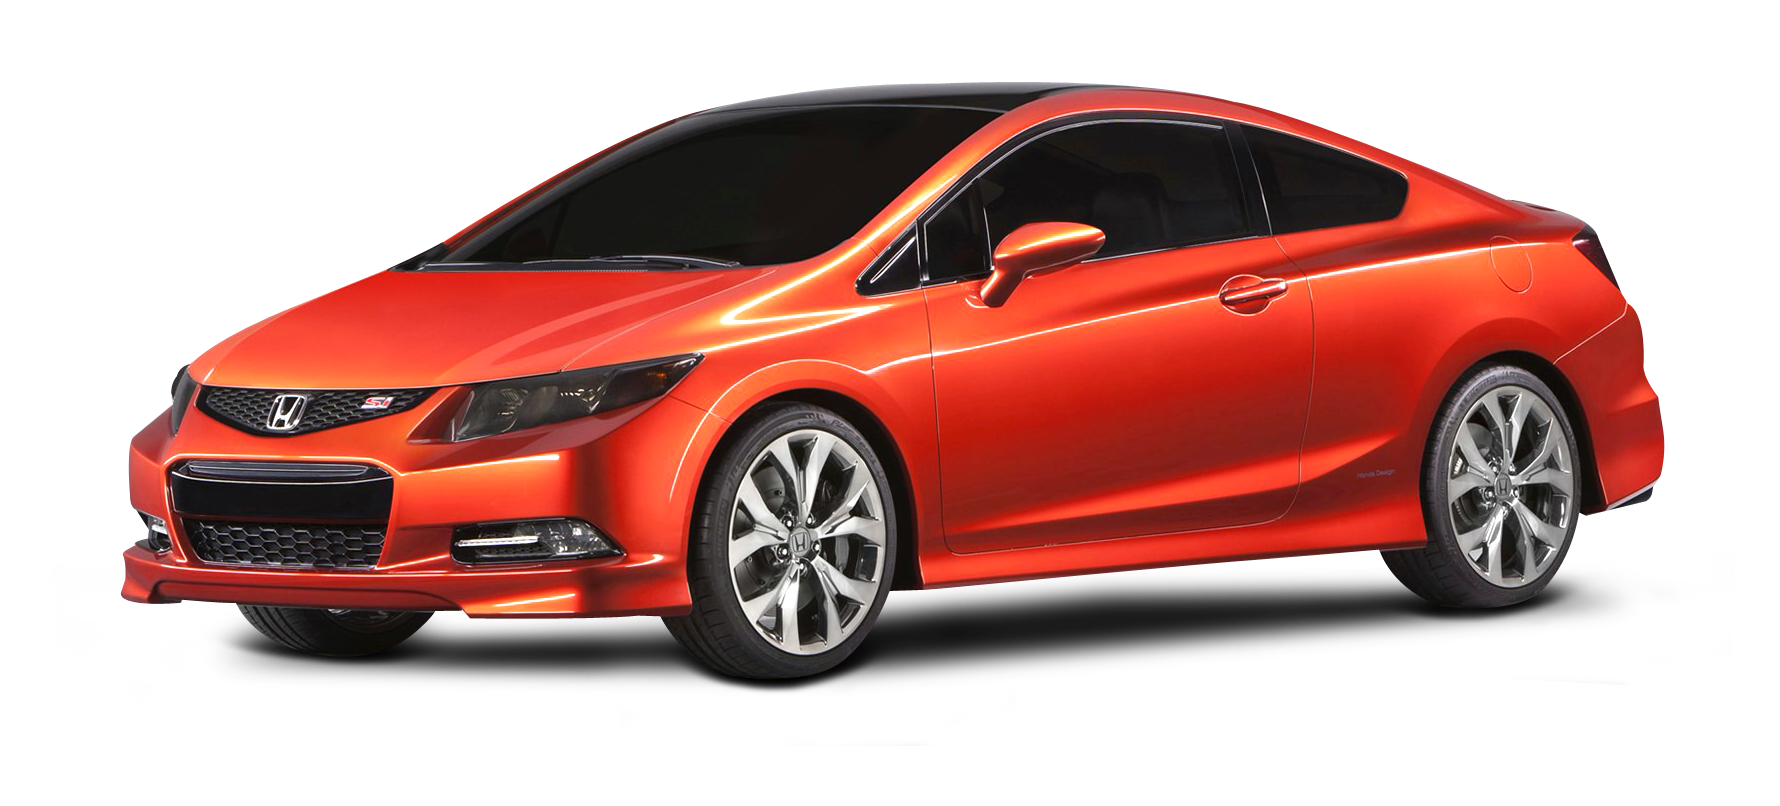 Red Honda Civic Car PNG Image.